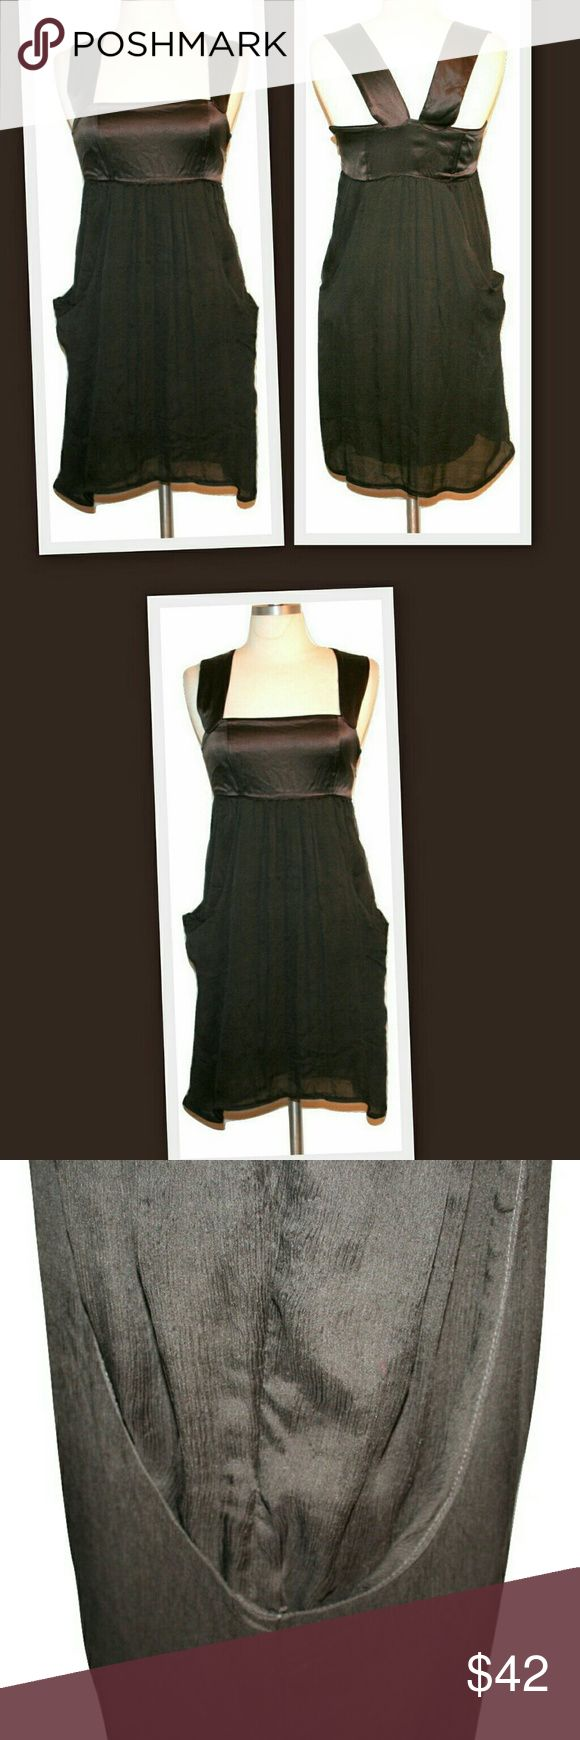 """Diesel Crinkle Silk Slouch Pocket Dress Diesel brown silk empire waist dress. The bodice is a shiny satin finish silk and the skirt is in a crinkle silk.  Large slouchy side pockets. Side invisible zipper. Lined in a soft knit.   There is a faint tiny dot on the top portion that is not obvious without close inspection.  100% silk  Lining 100% viscose   Marked size XS Bust 32"""" Waist 28"""" Hips full  Length 37"""" Diesel Dresses"""